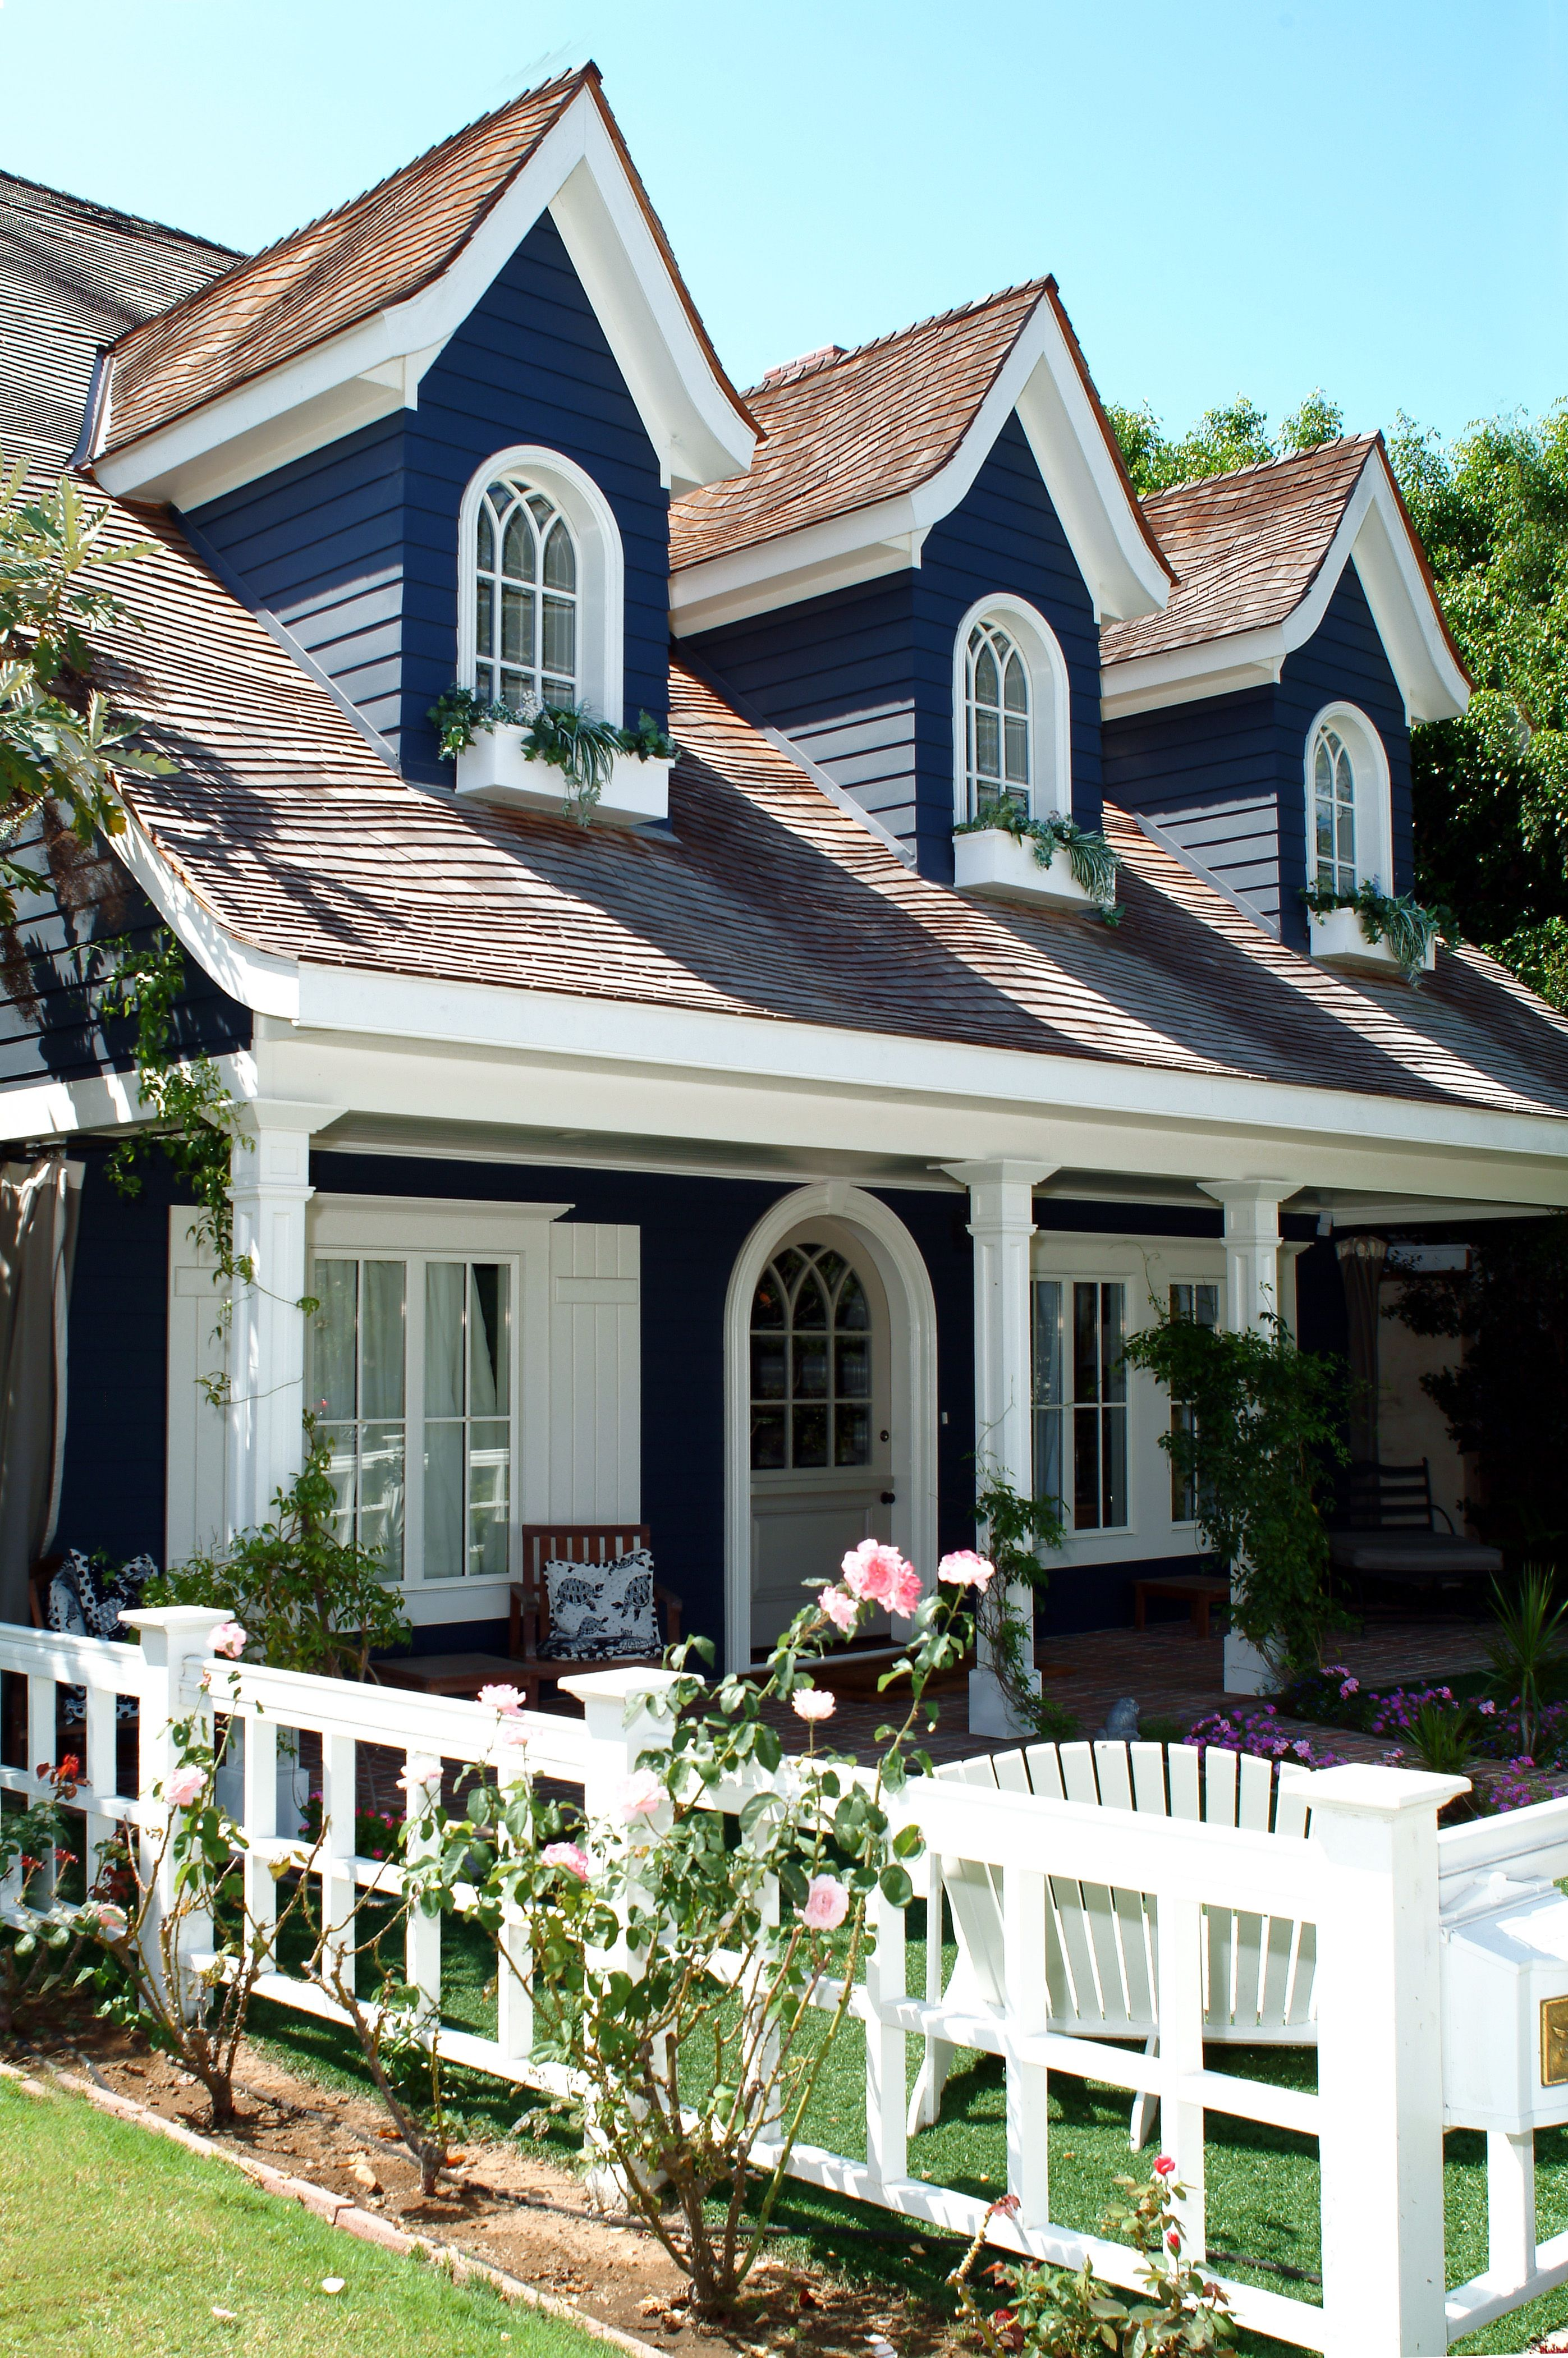 Cape Cod House Colors : house, colors, Feeling, Inspired, Gallery?, Makeover, Moulding., Premiu…, House, Exterior,, Colors,, Exterior, Colors